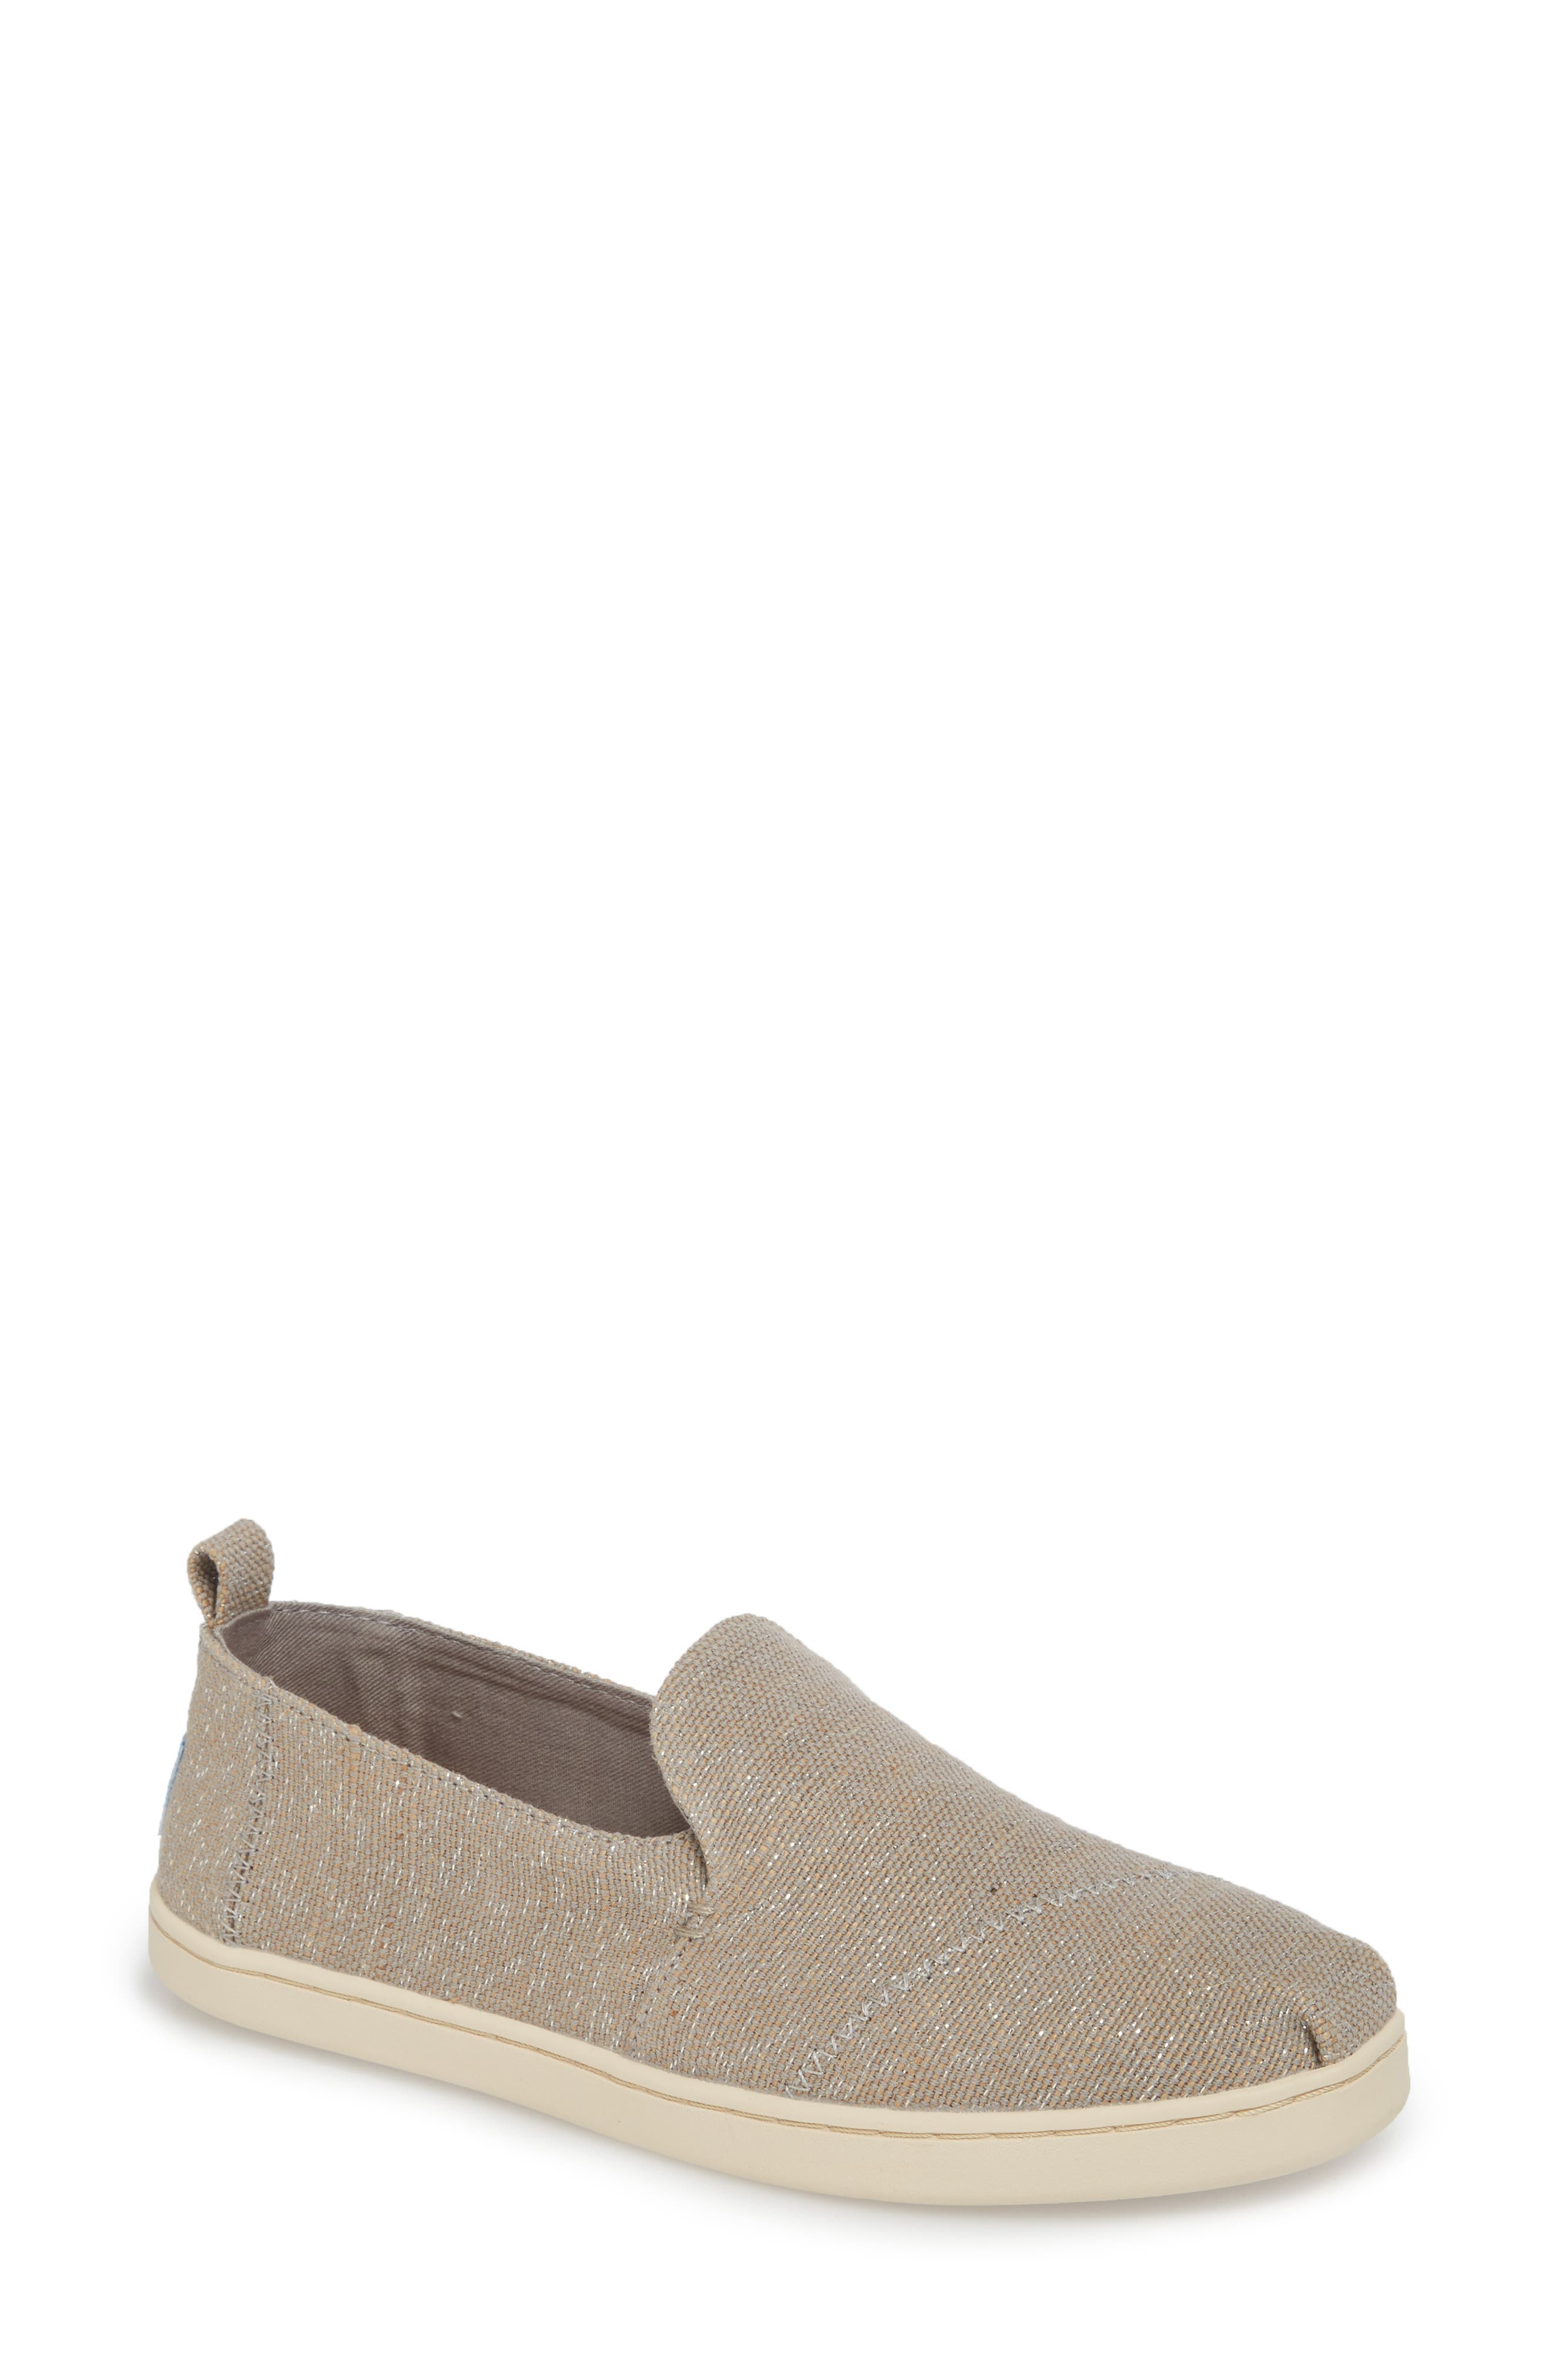 Deconstructed Alpargata Slip-On,                         Main,                         color, 040